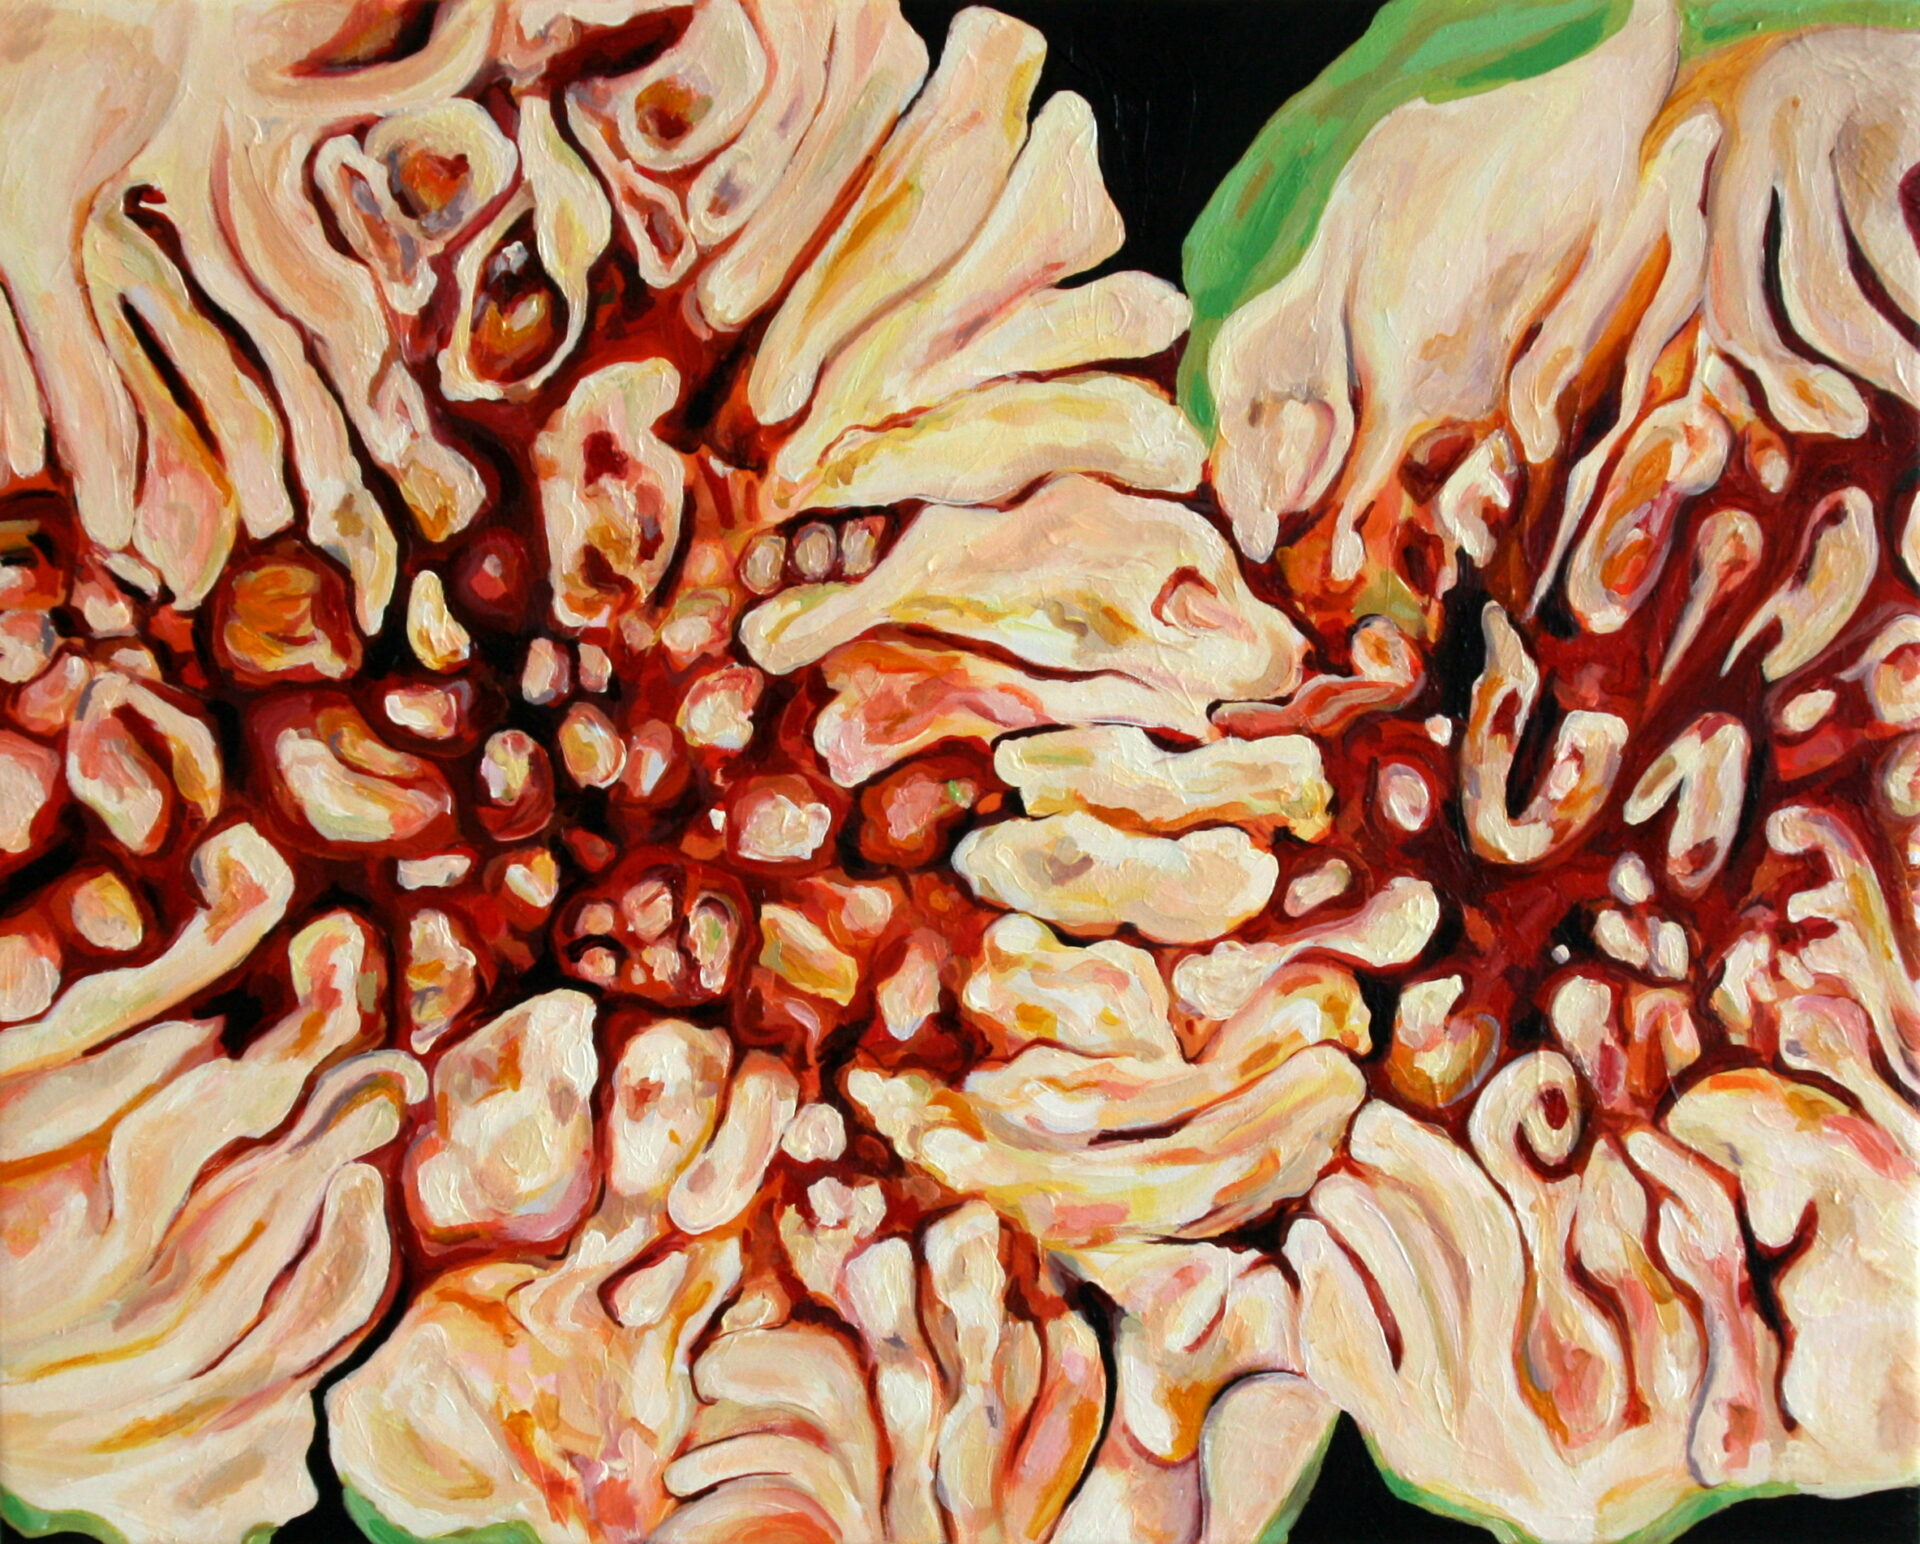 Angela Faustina, Fico (Fig) II, 2011. Oil on canvas, 50 cm by 40 cm.